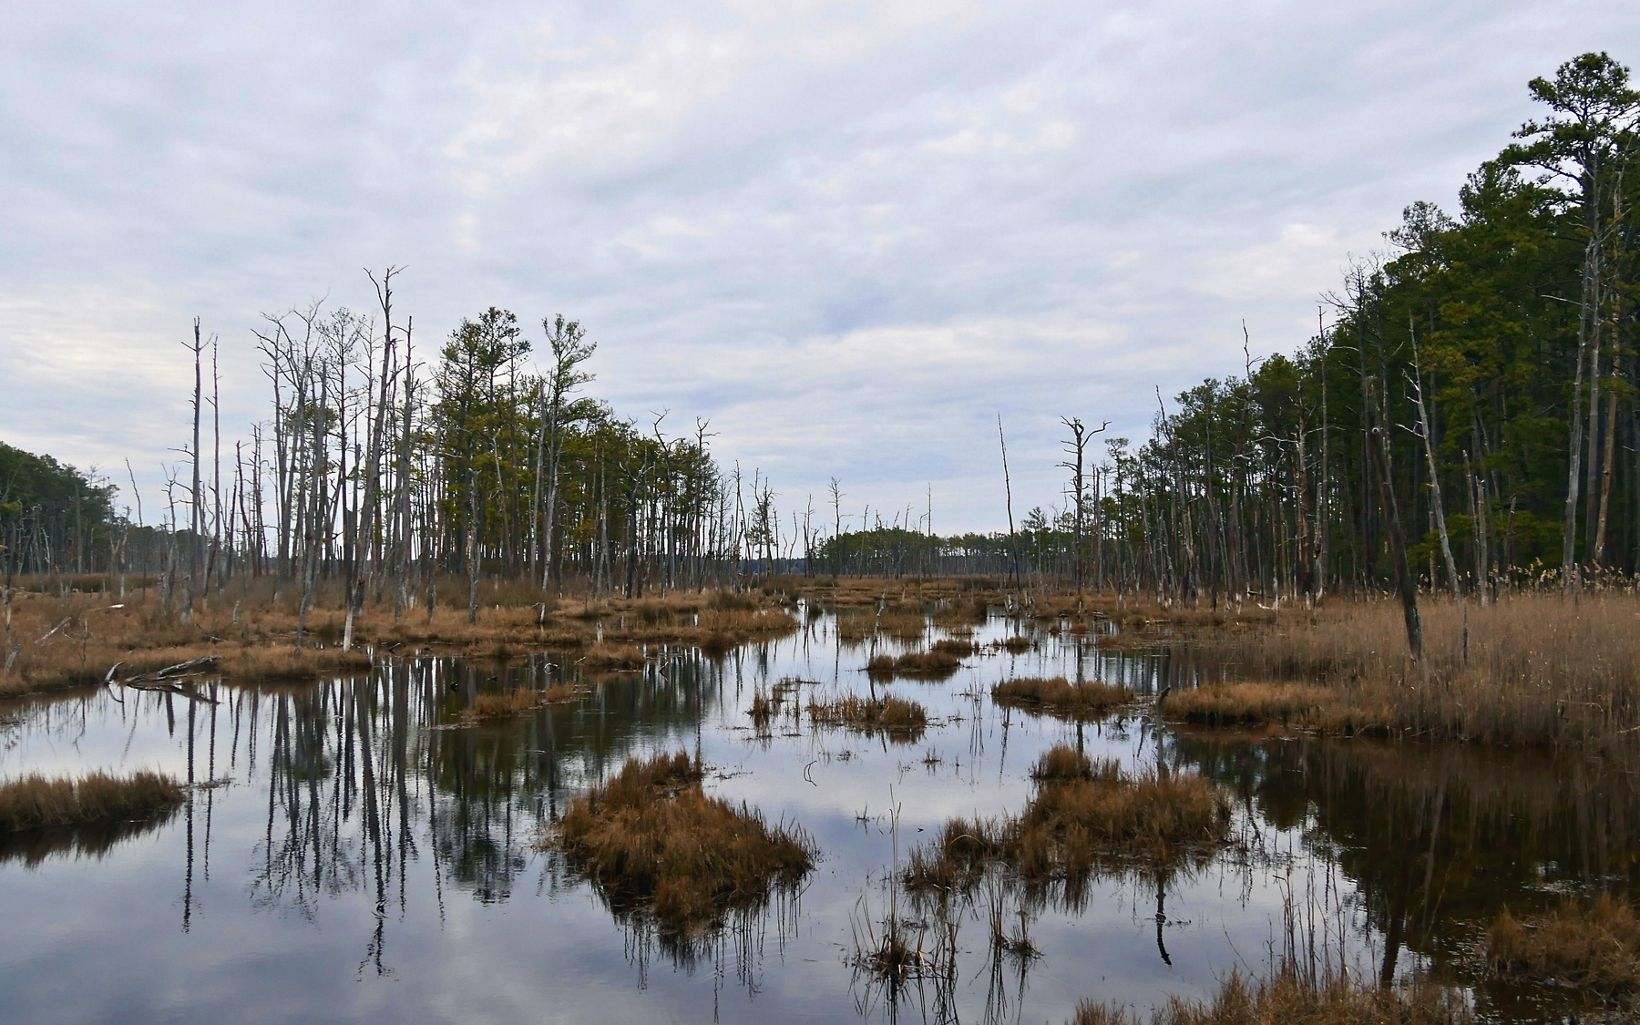 The Robinson Neck preserve on Maryland's Eastern Shore is largely comprised of brackish tidal marsh and provides a haven for many bird species.